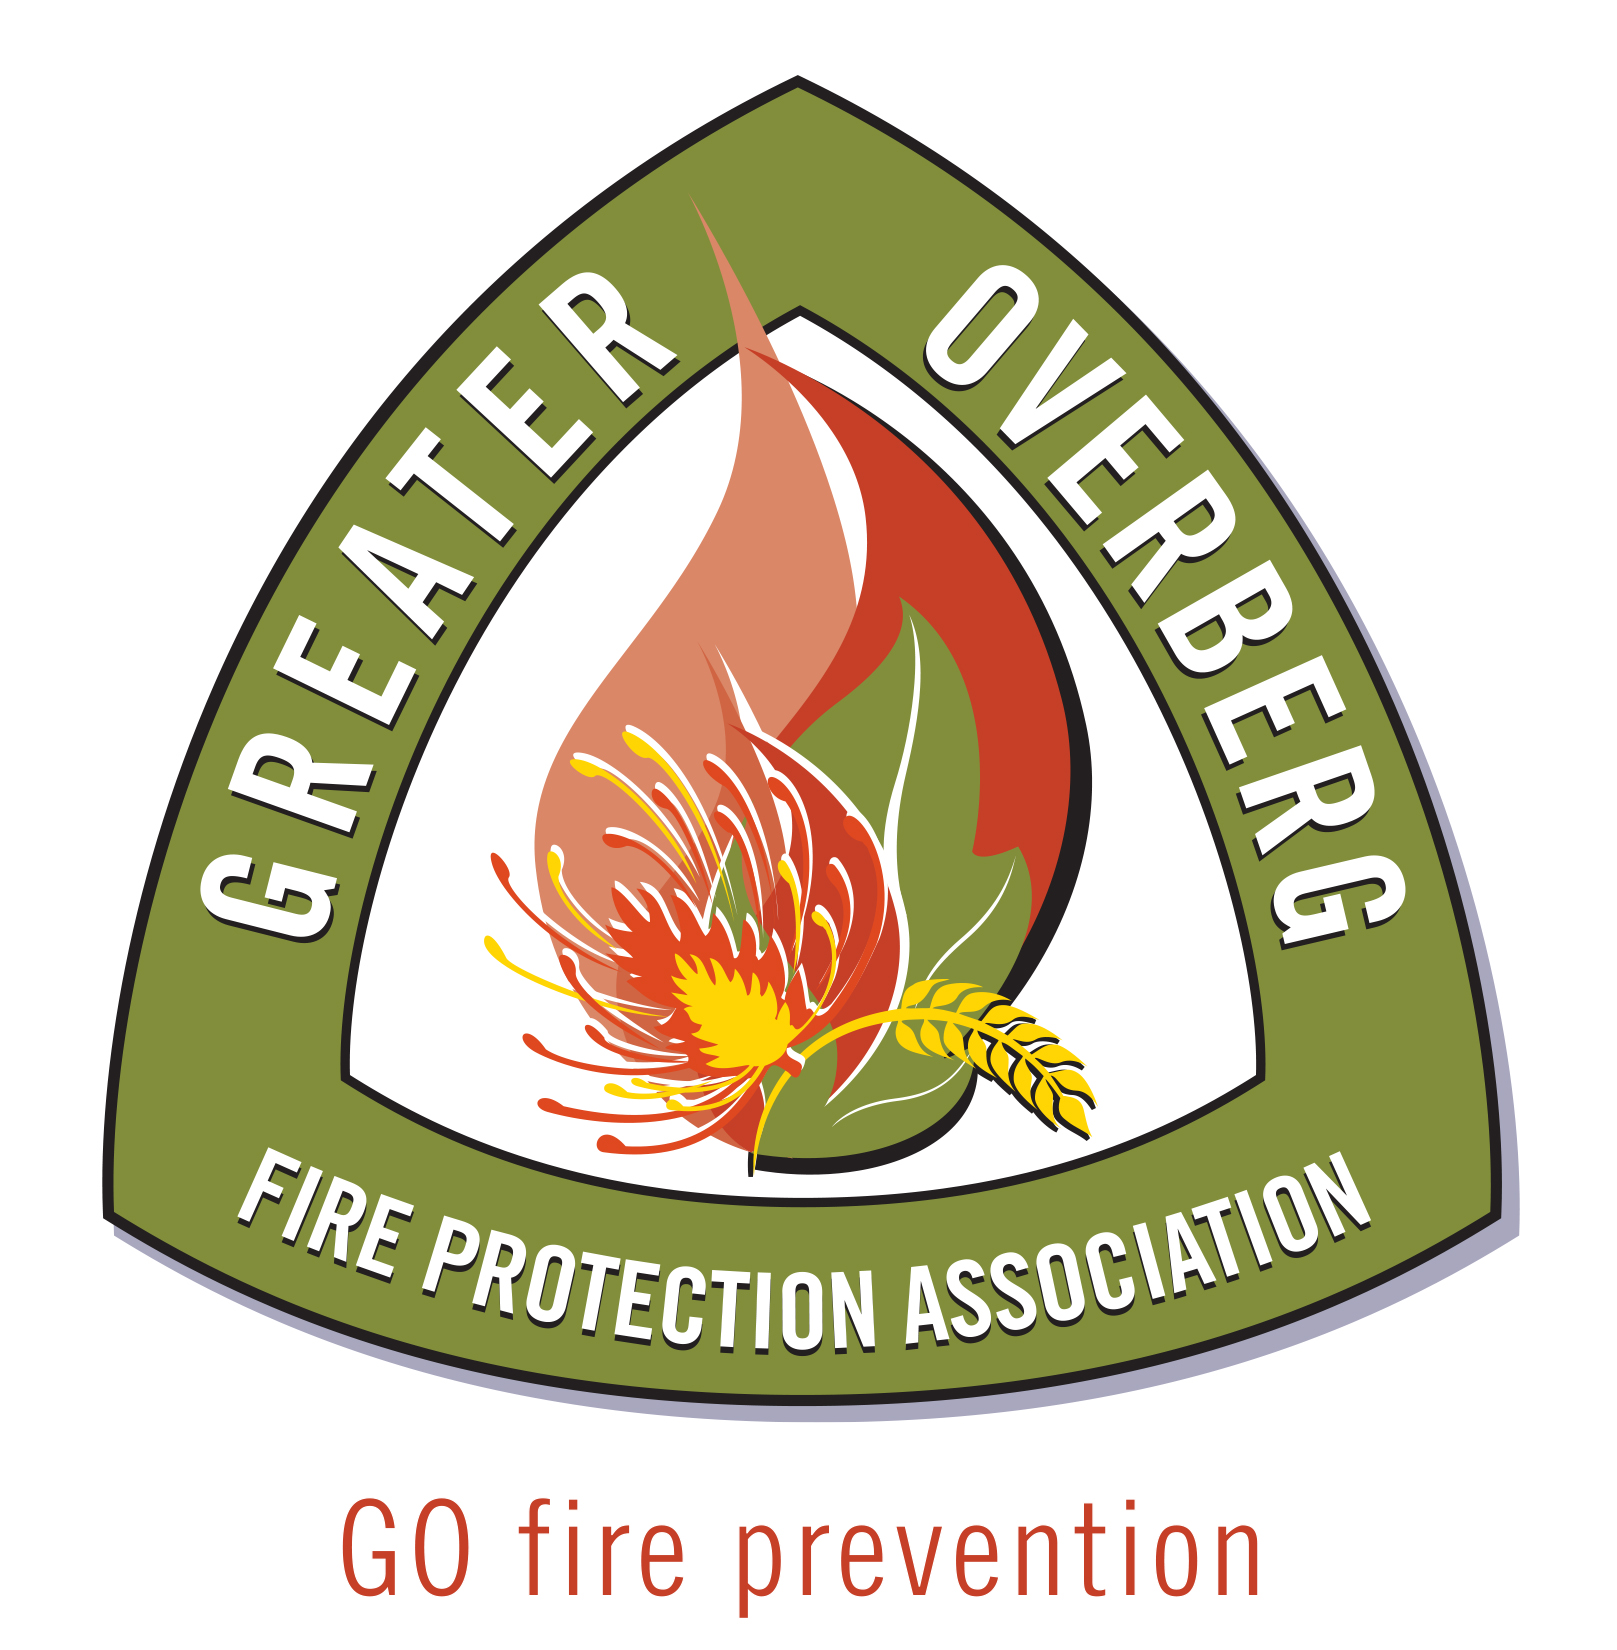 Greater Overberg Fire Protection Association Thumb Image